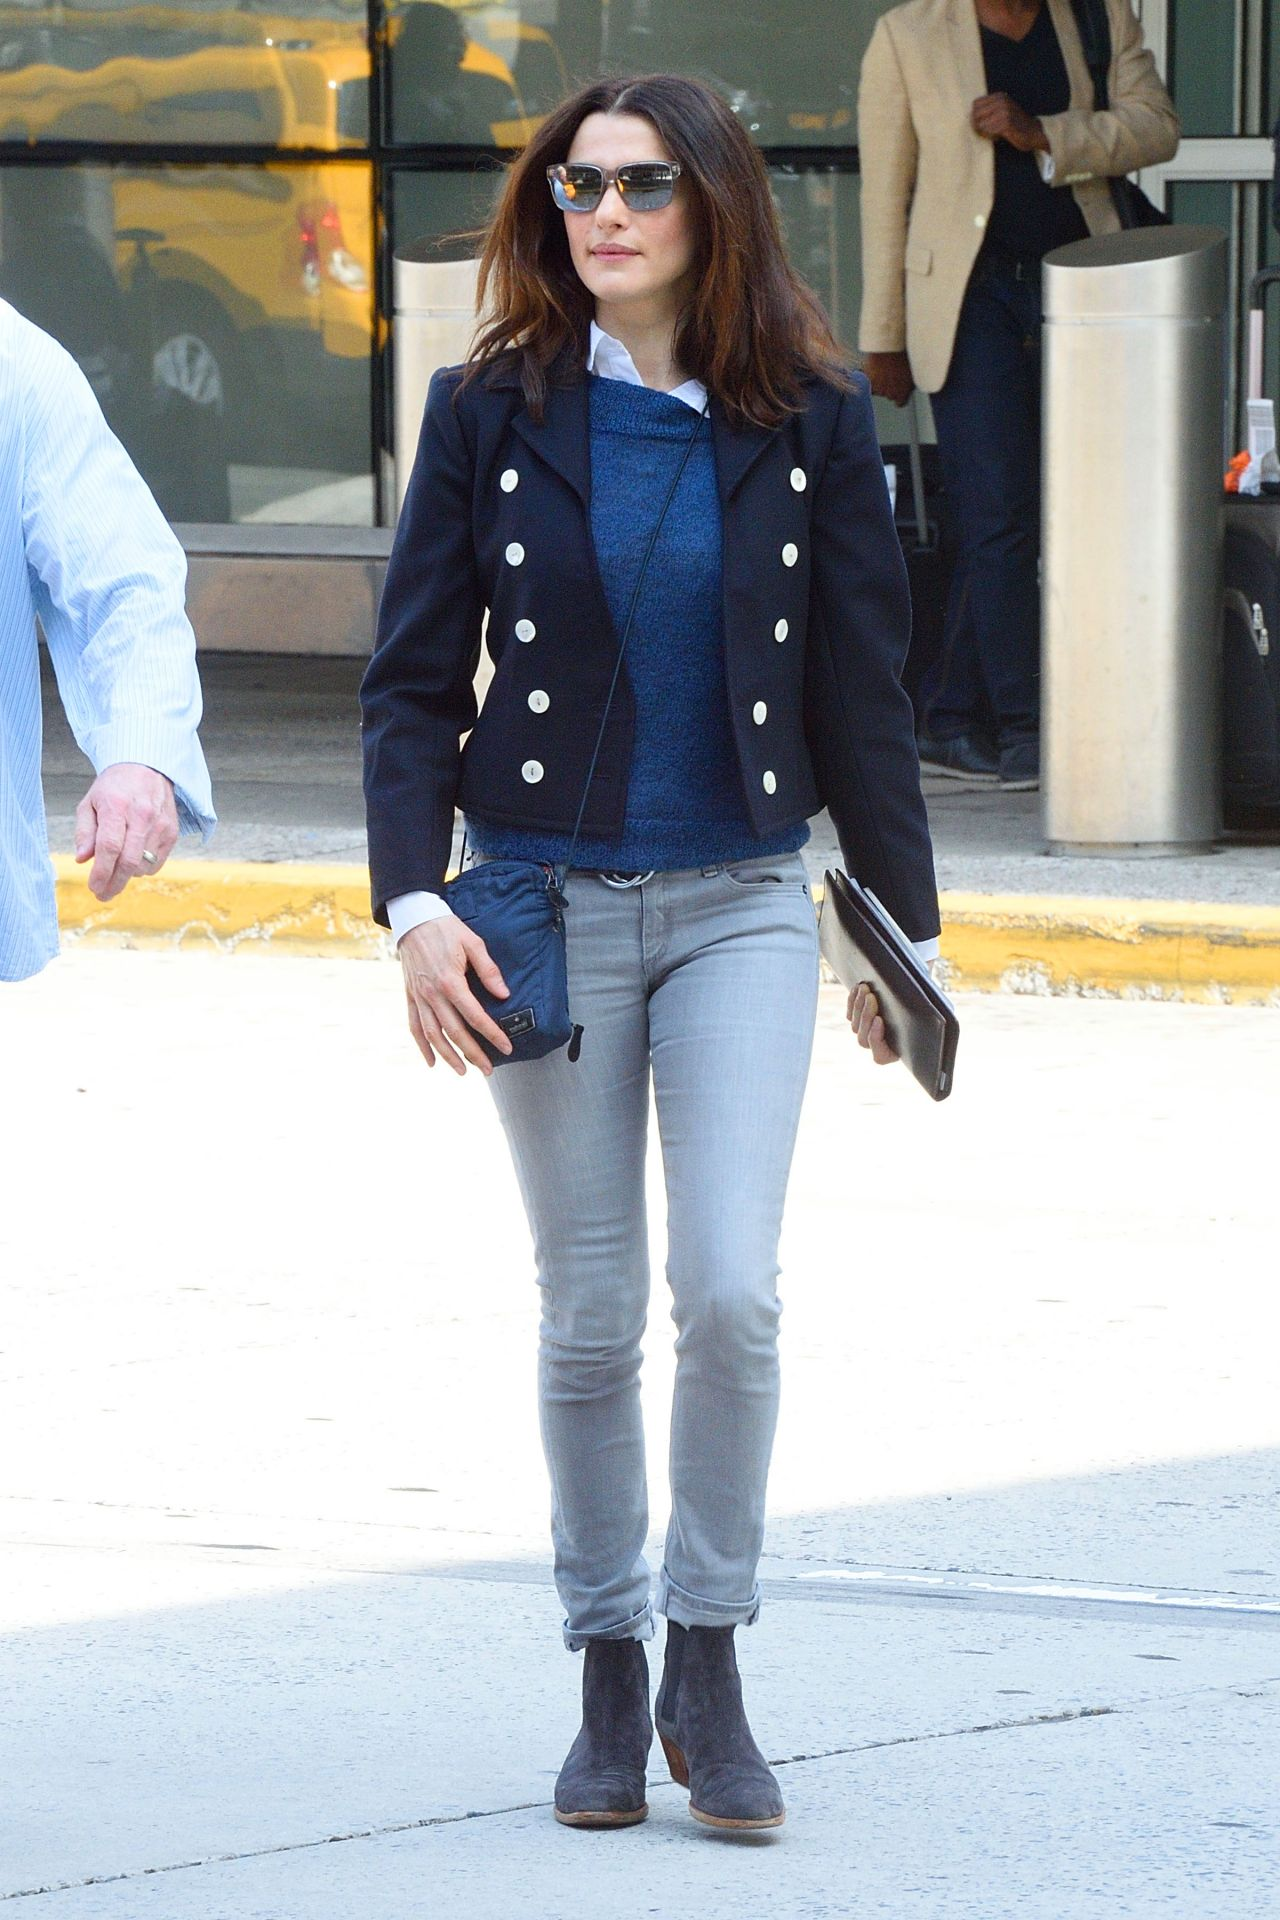 rachel weisz travel outfit at jfk airport in new york